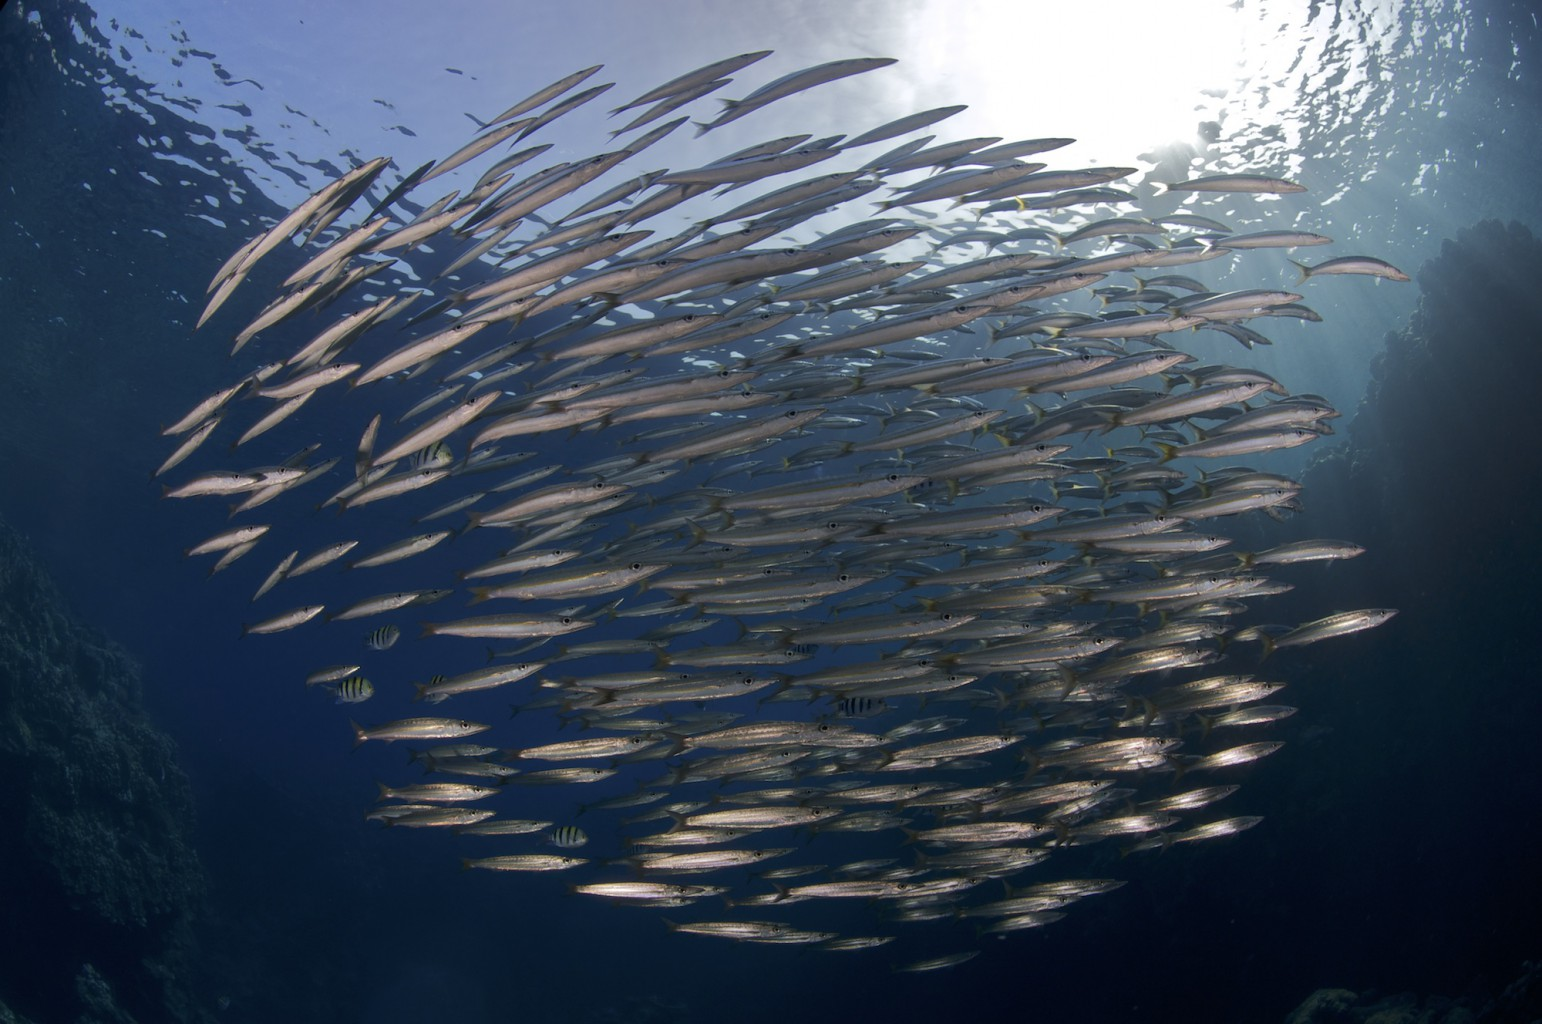 School of Baby Barracuda, Shaab Abu Dabab, southern Red Sea, Egypt